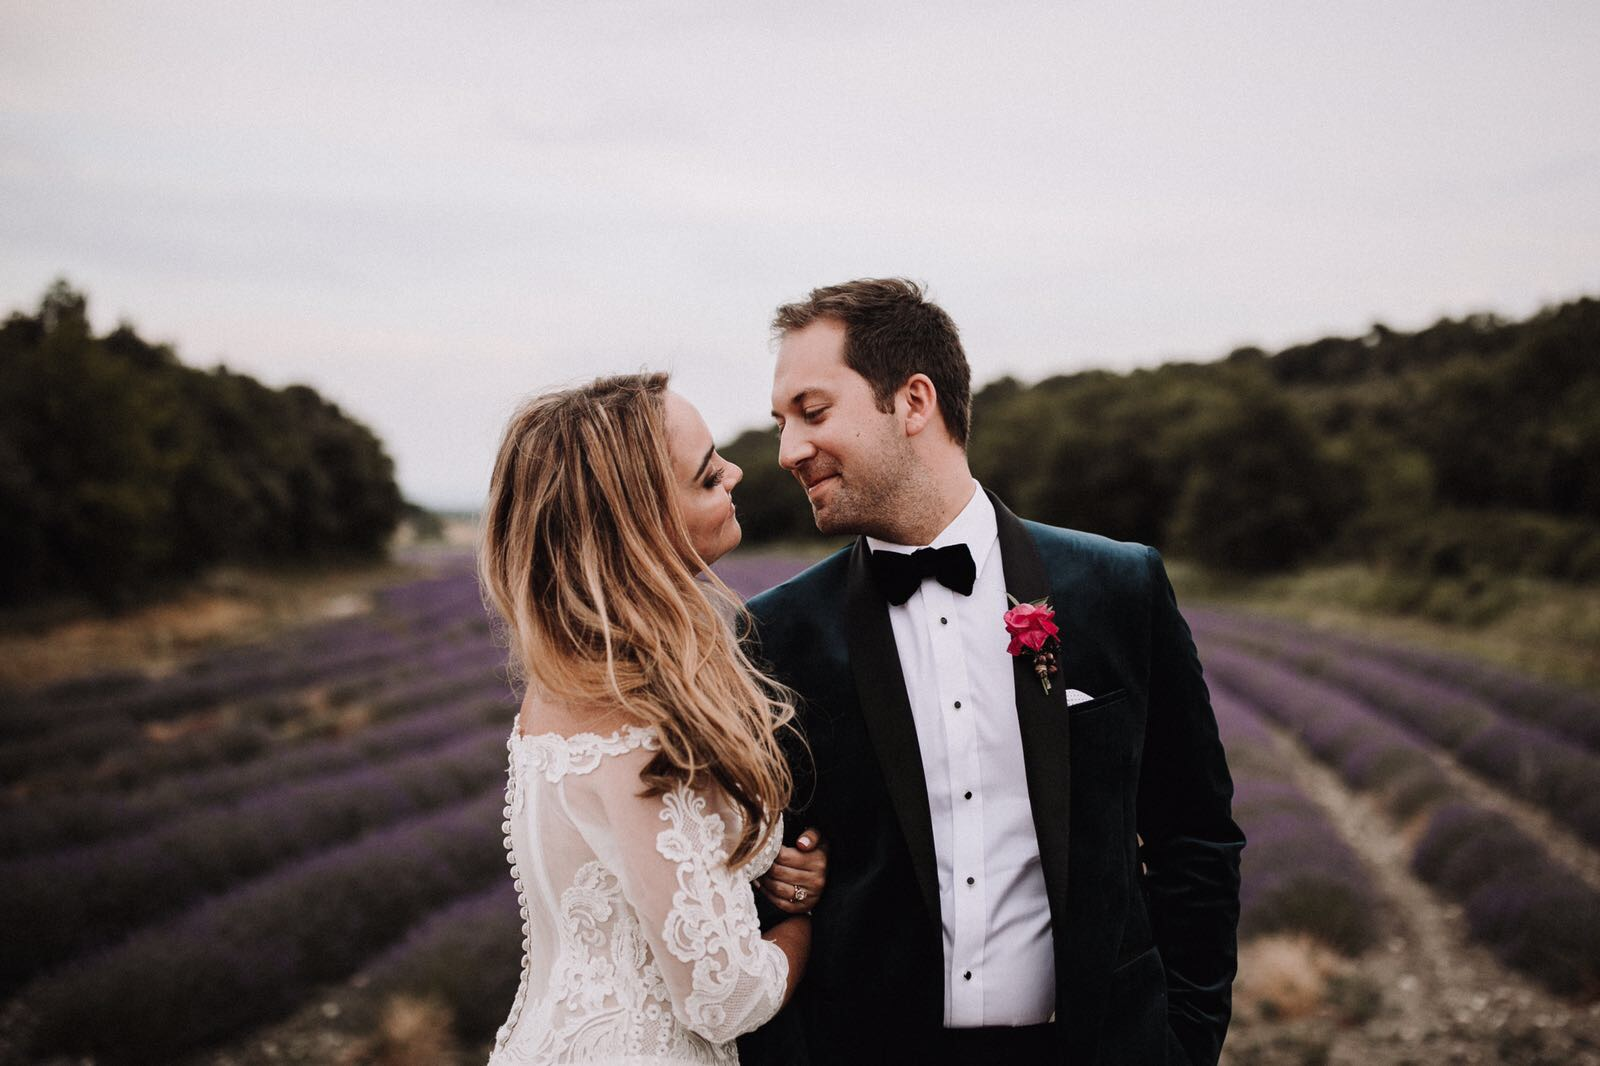 French Wedding Style - Today's wedding in Vaucluse France is full of awesome views that will keep us staying in love with this stunning wedding. Laura Dova Weddings masterplanned the event for this special couple who flew away from Australia to France, just to enjoy and witness their wedding. James Frost delivered breath taking photos and memories of the celebration.DECOUVRIR…